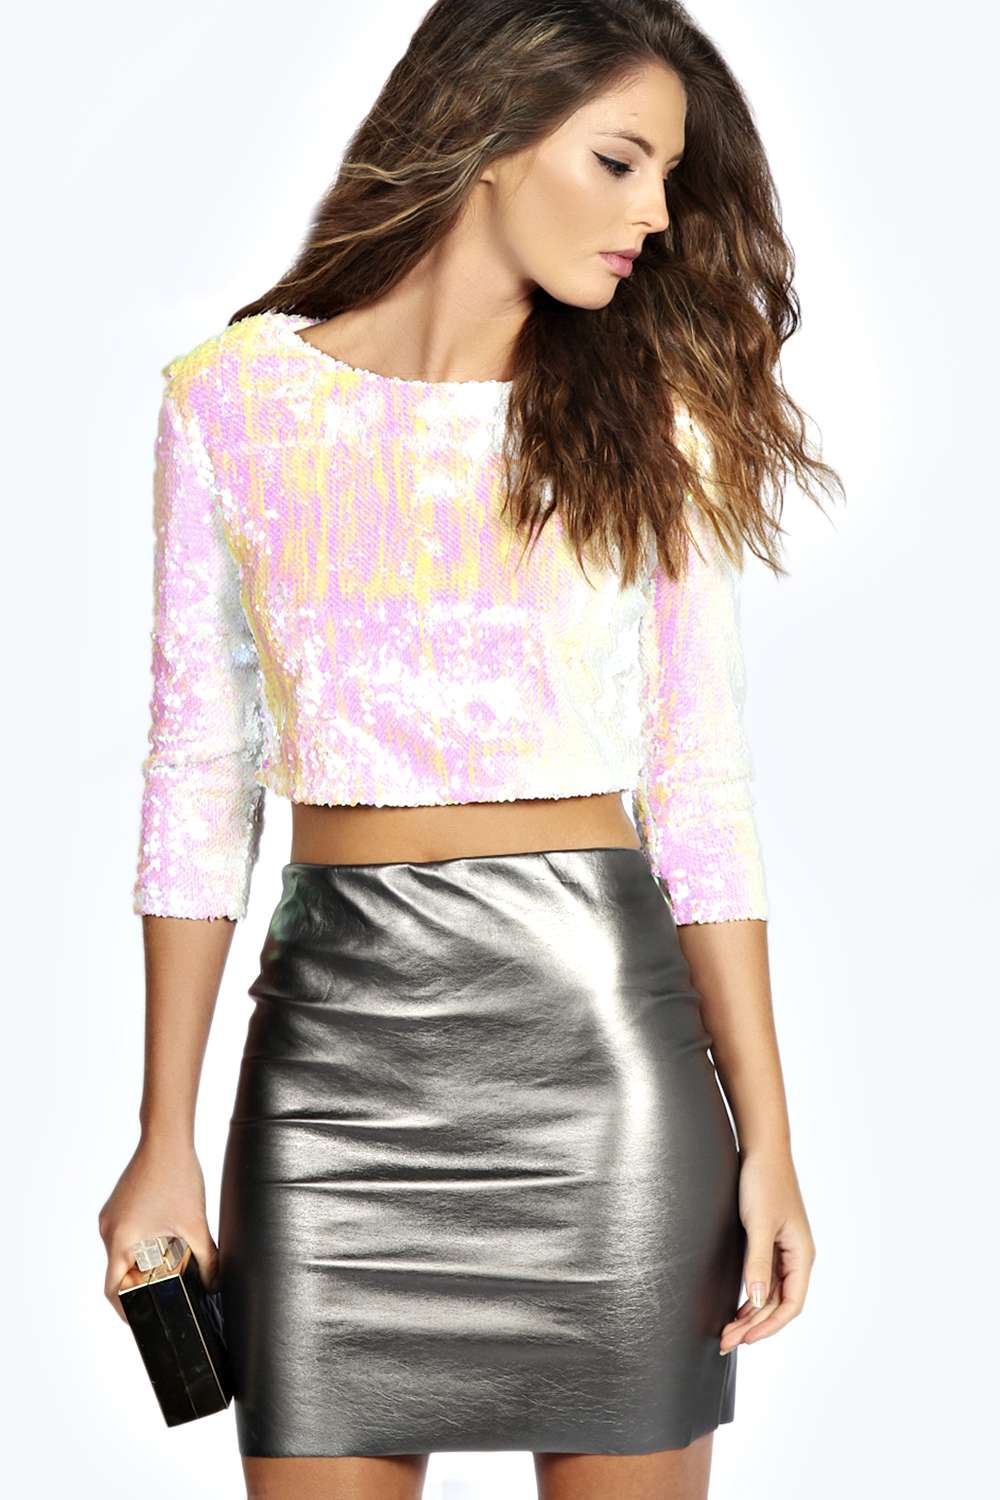 With Boohoo Ireland Purchase, Grab up to 60% Off Sale Items A fabulous deal from jdgcrlweightlossduzmpl.ml and get this discount for savings: Up to 60% off sale items. Get the offer now.